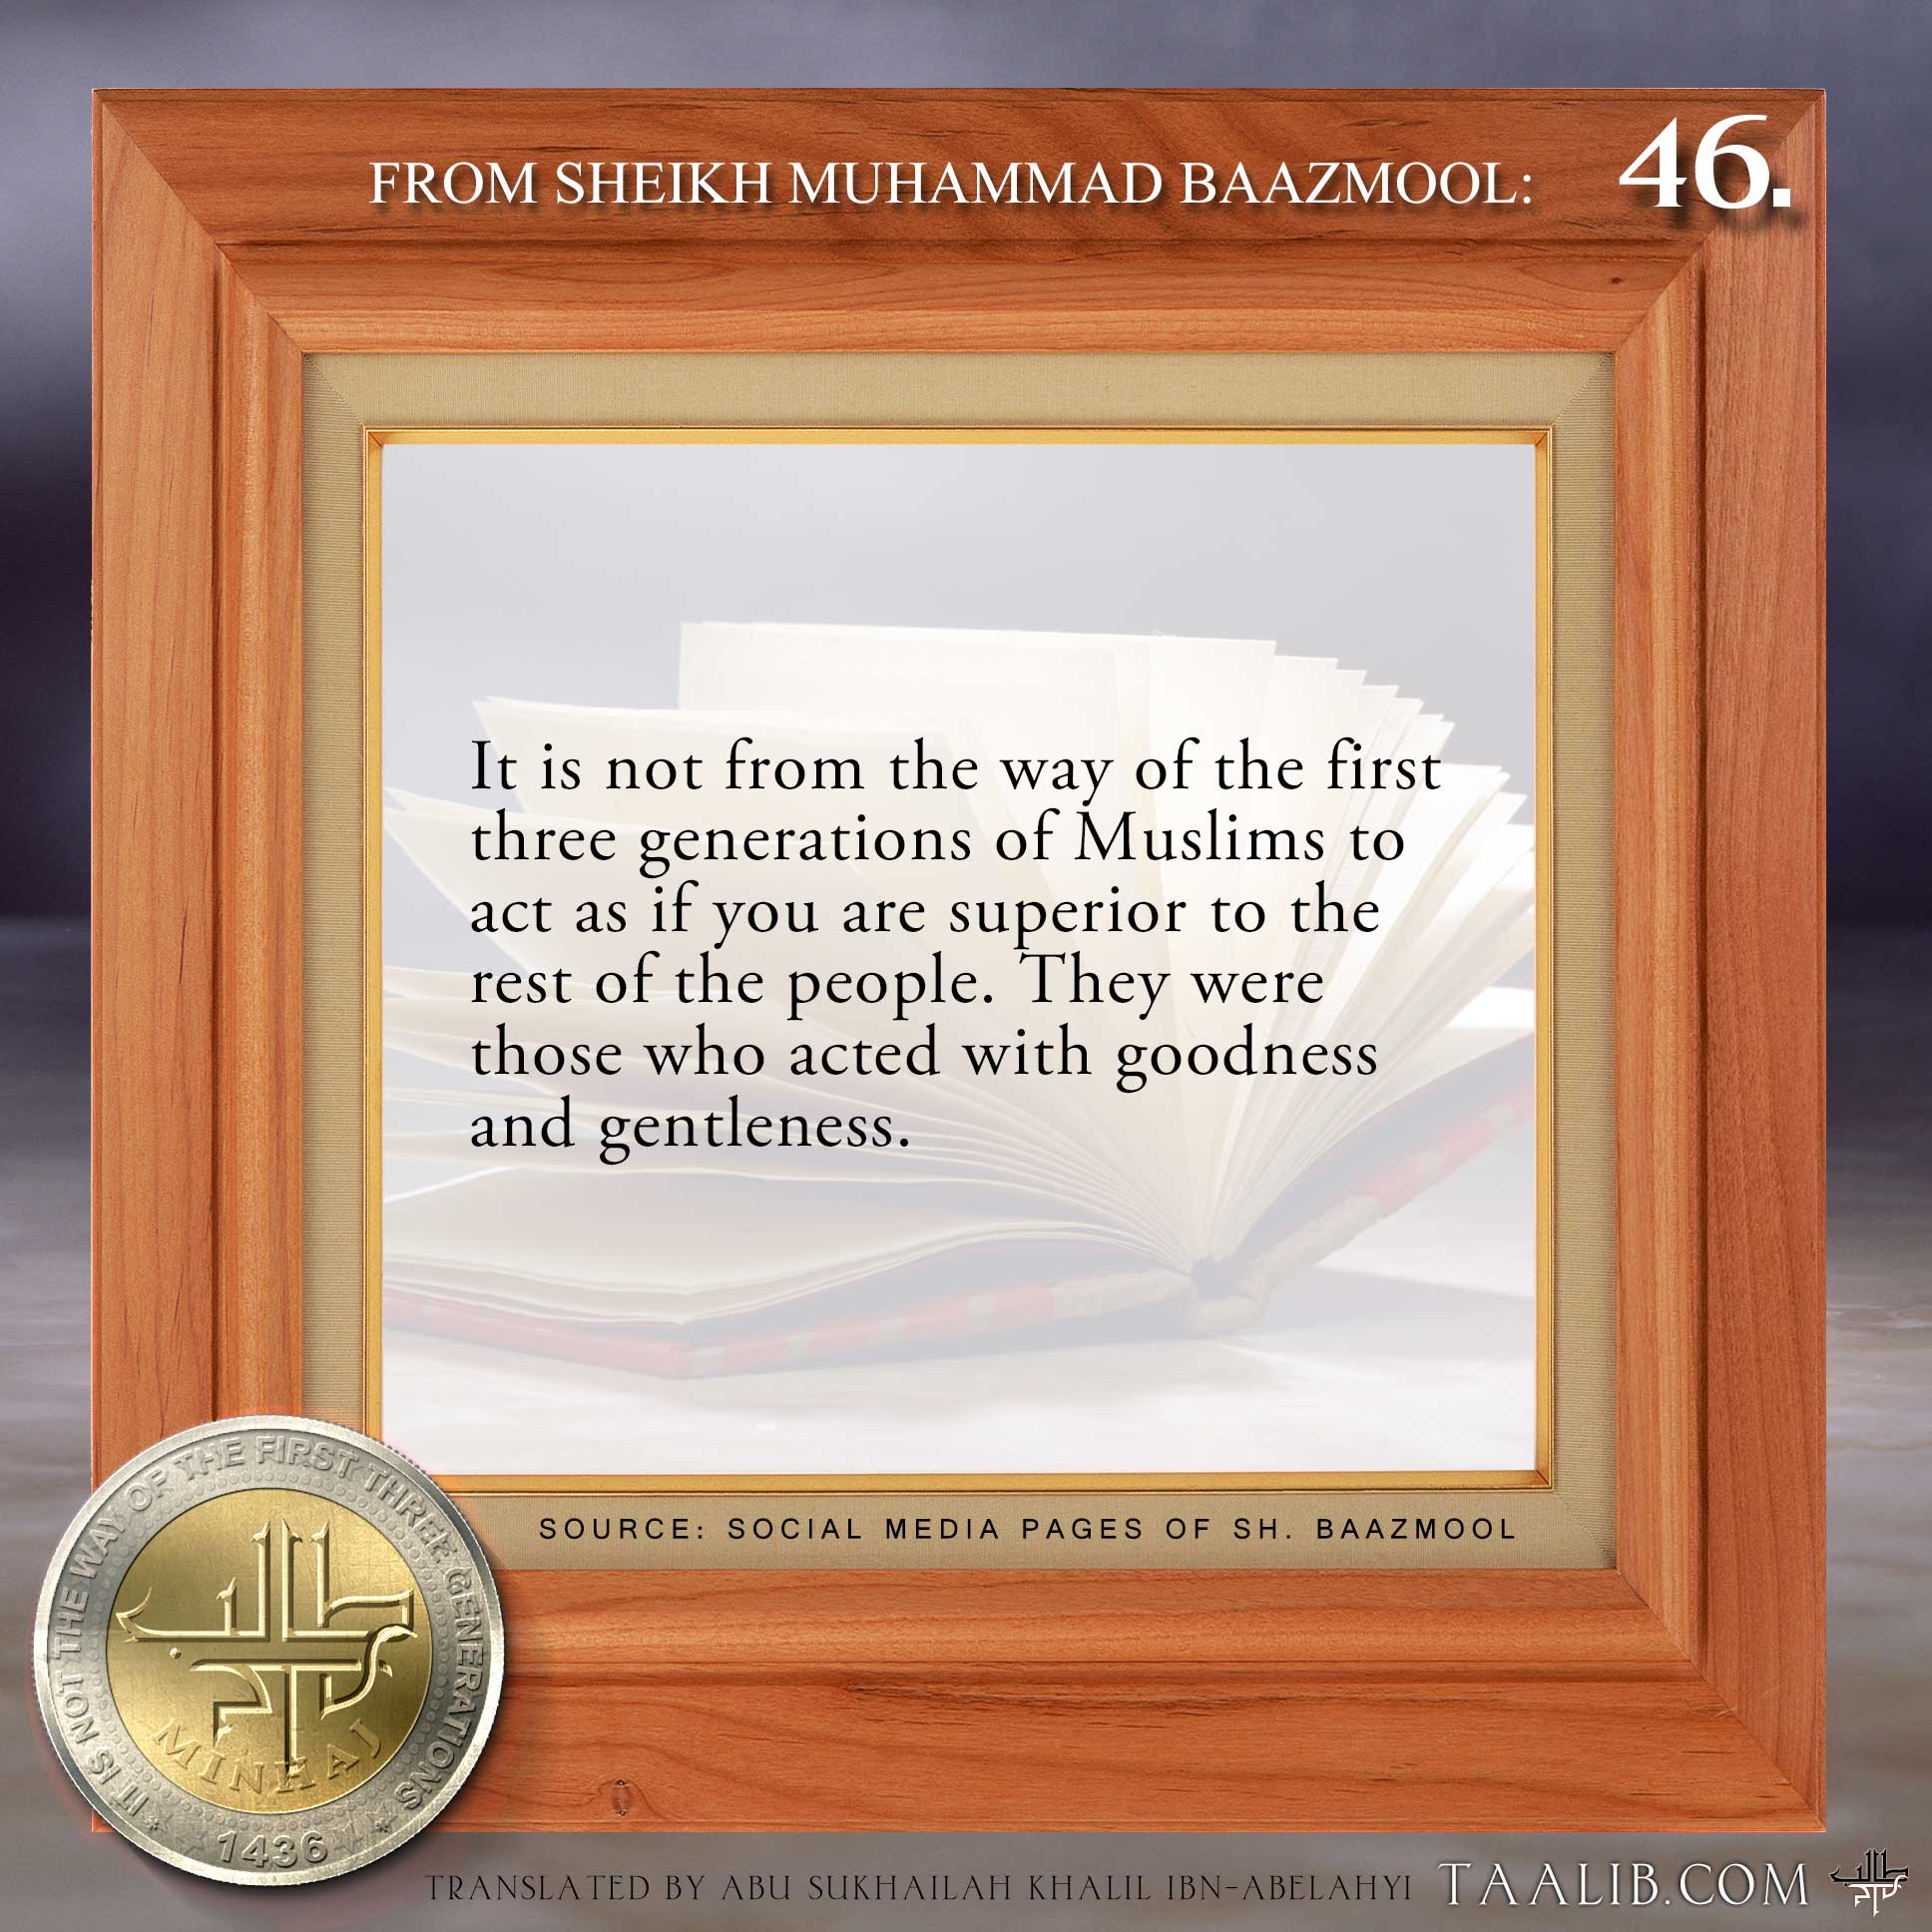 """Week 46: The guided Muslims do not act superior to the people, they follow the Salaf who acted with gentleness and good character. …. Series """"It is not from the way"""""""